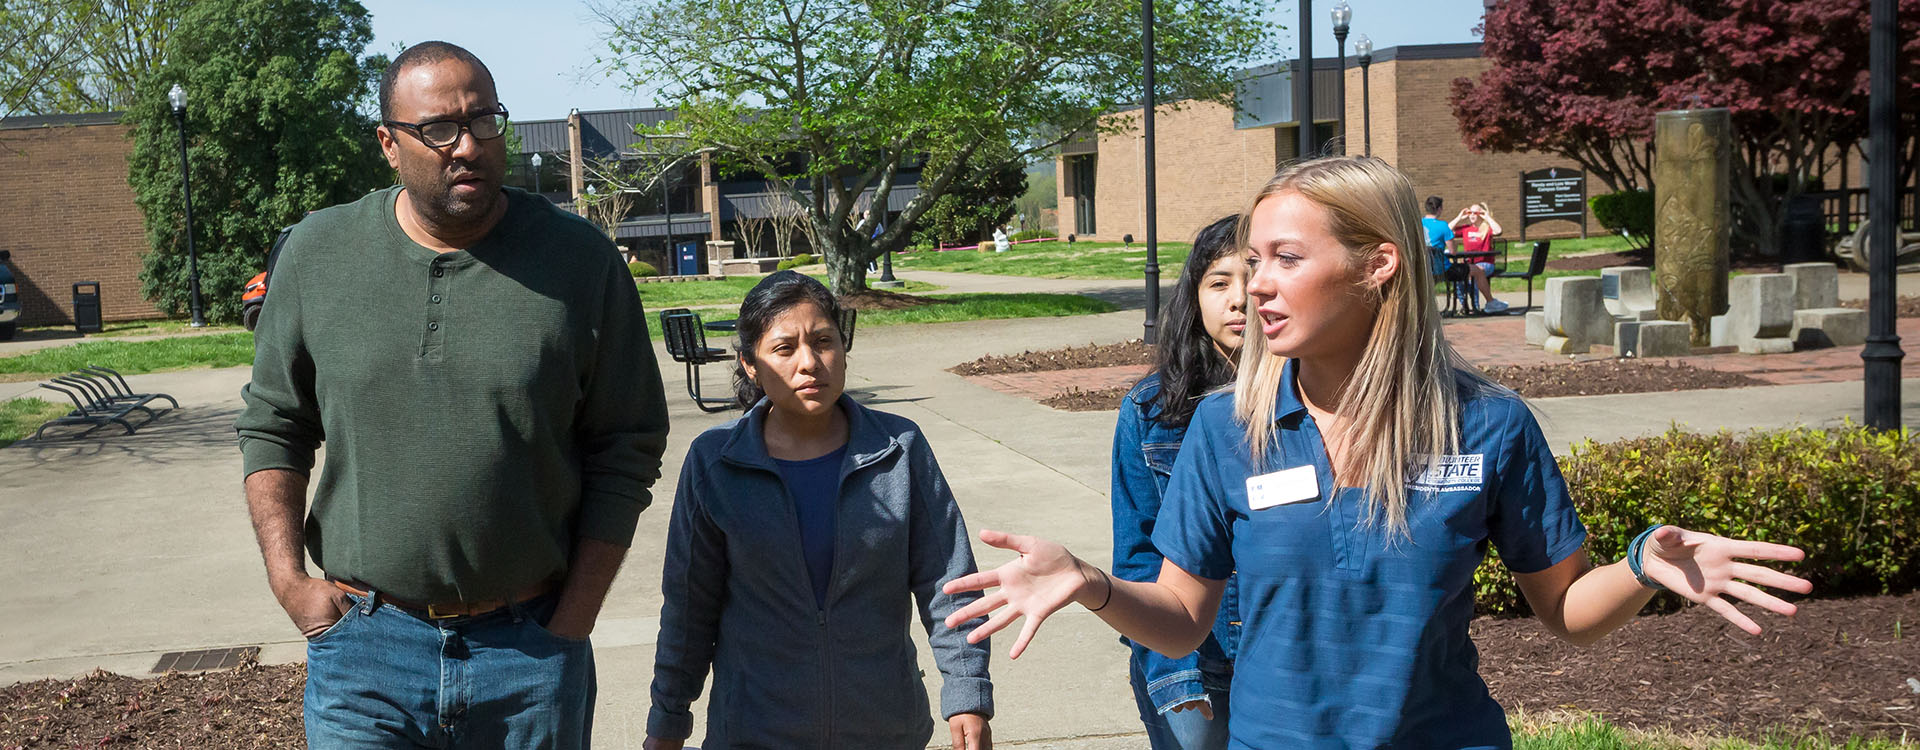 a campus tour guide leading a group